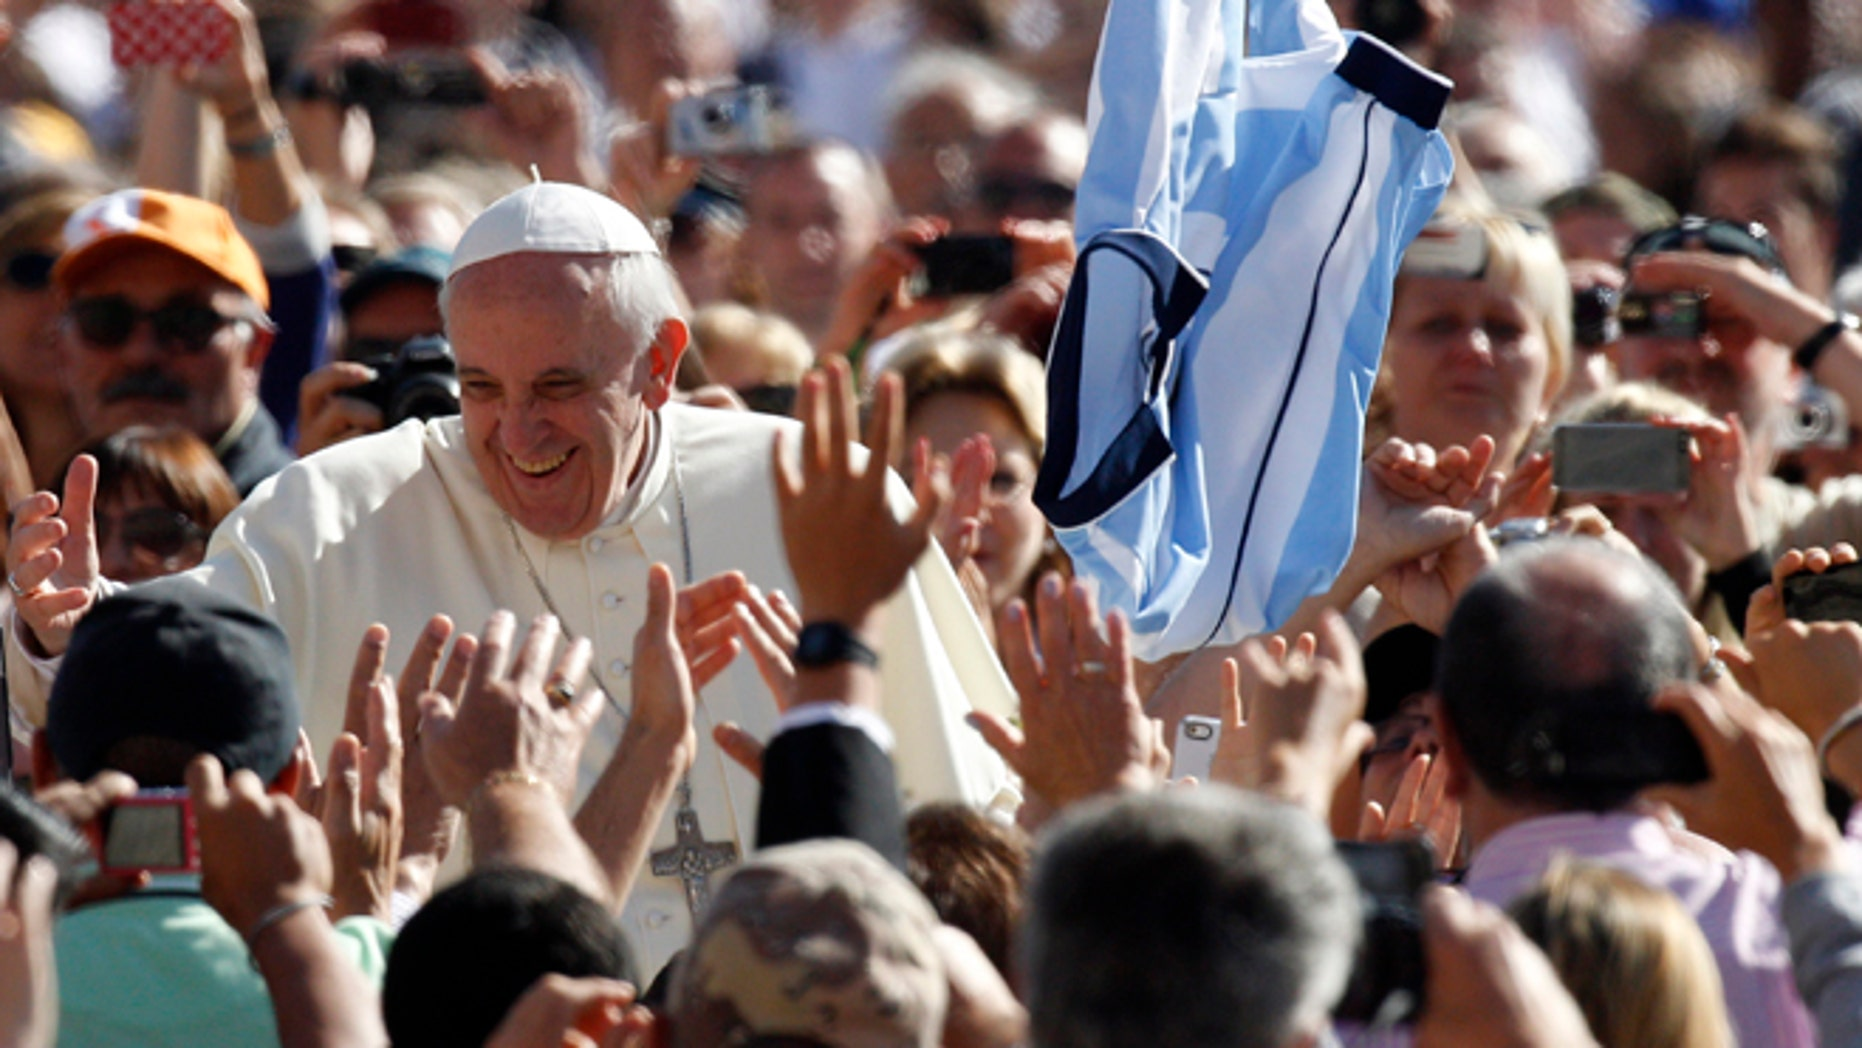 Pope Francis greets faithful upon arrival for his weekly general audience in St. Peter's Square at the Vatican, Wednesday, Sept. 18, 2013.